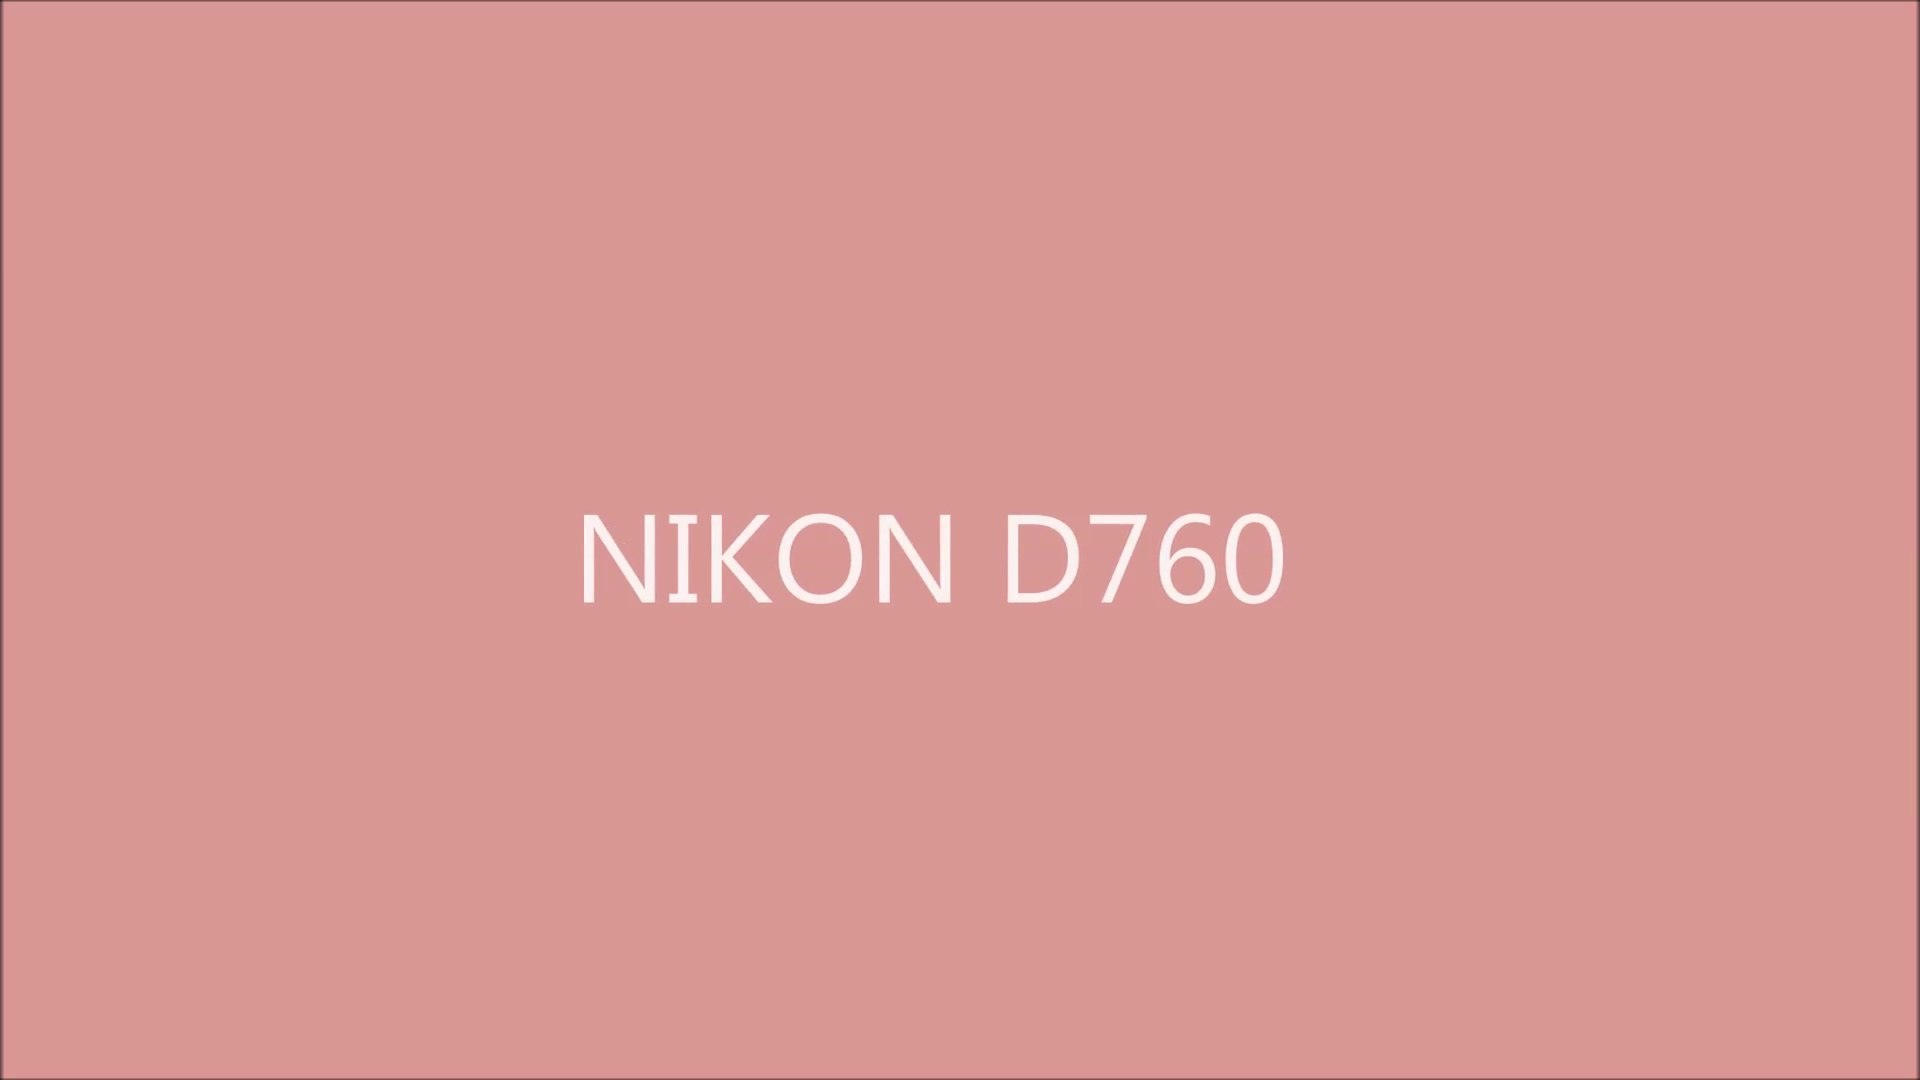 Nikon D760 : Specifications & Release Date